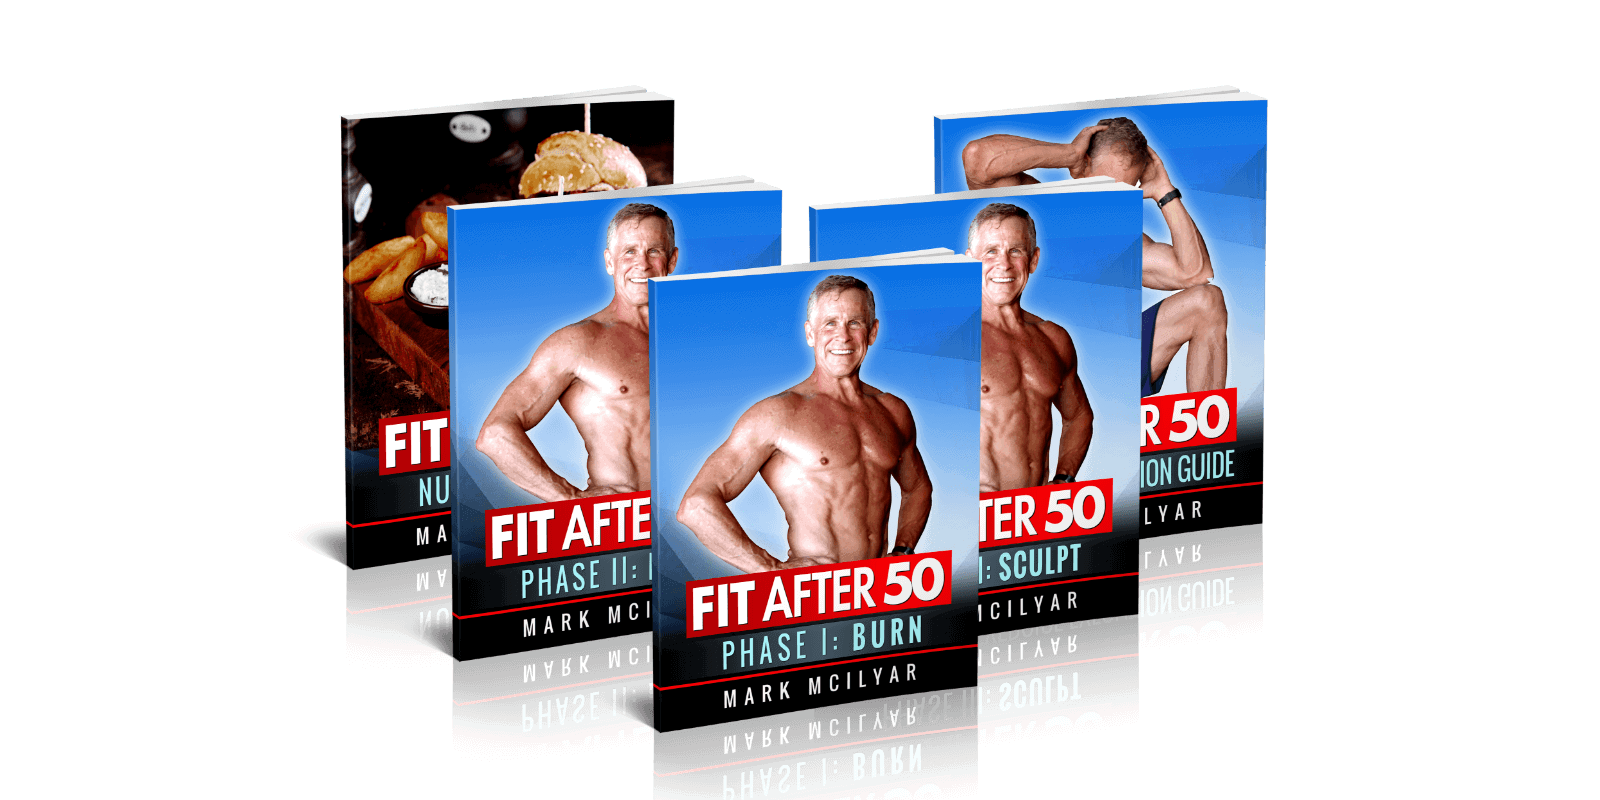 Fit After 50 review